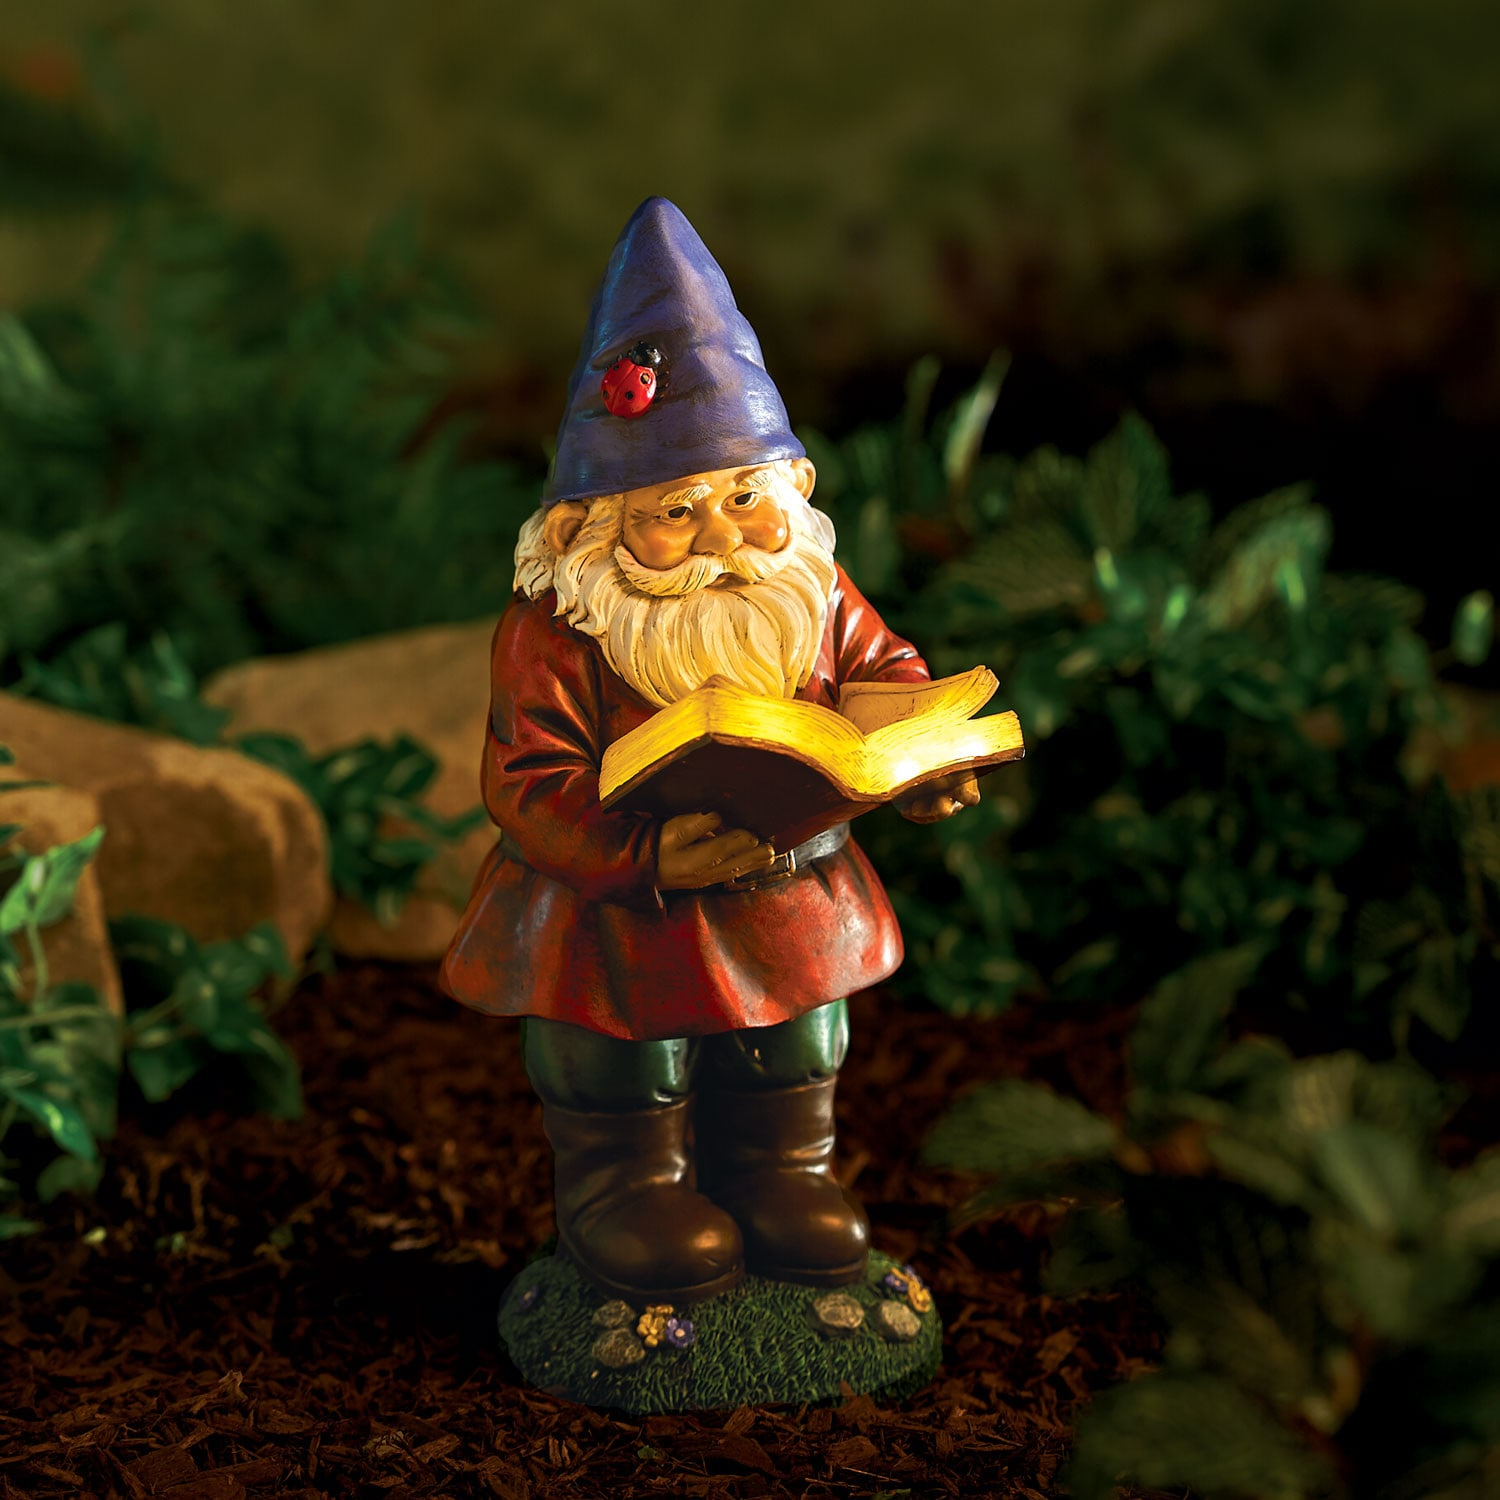 Lawn Ornaments Or Automotive Outsider >> Lighted Reading Garden Gnome Statue Solar Light Up Lawn Patio Yard